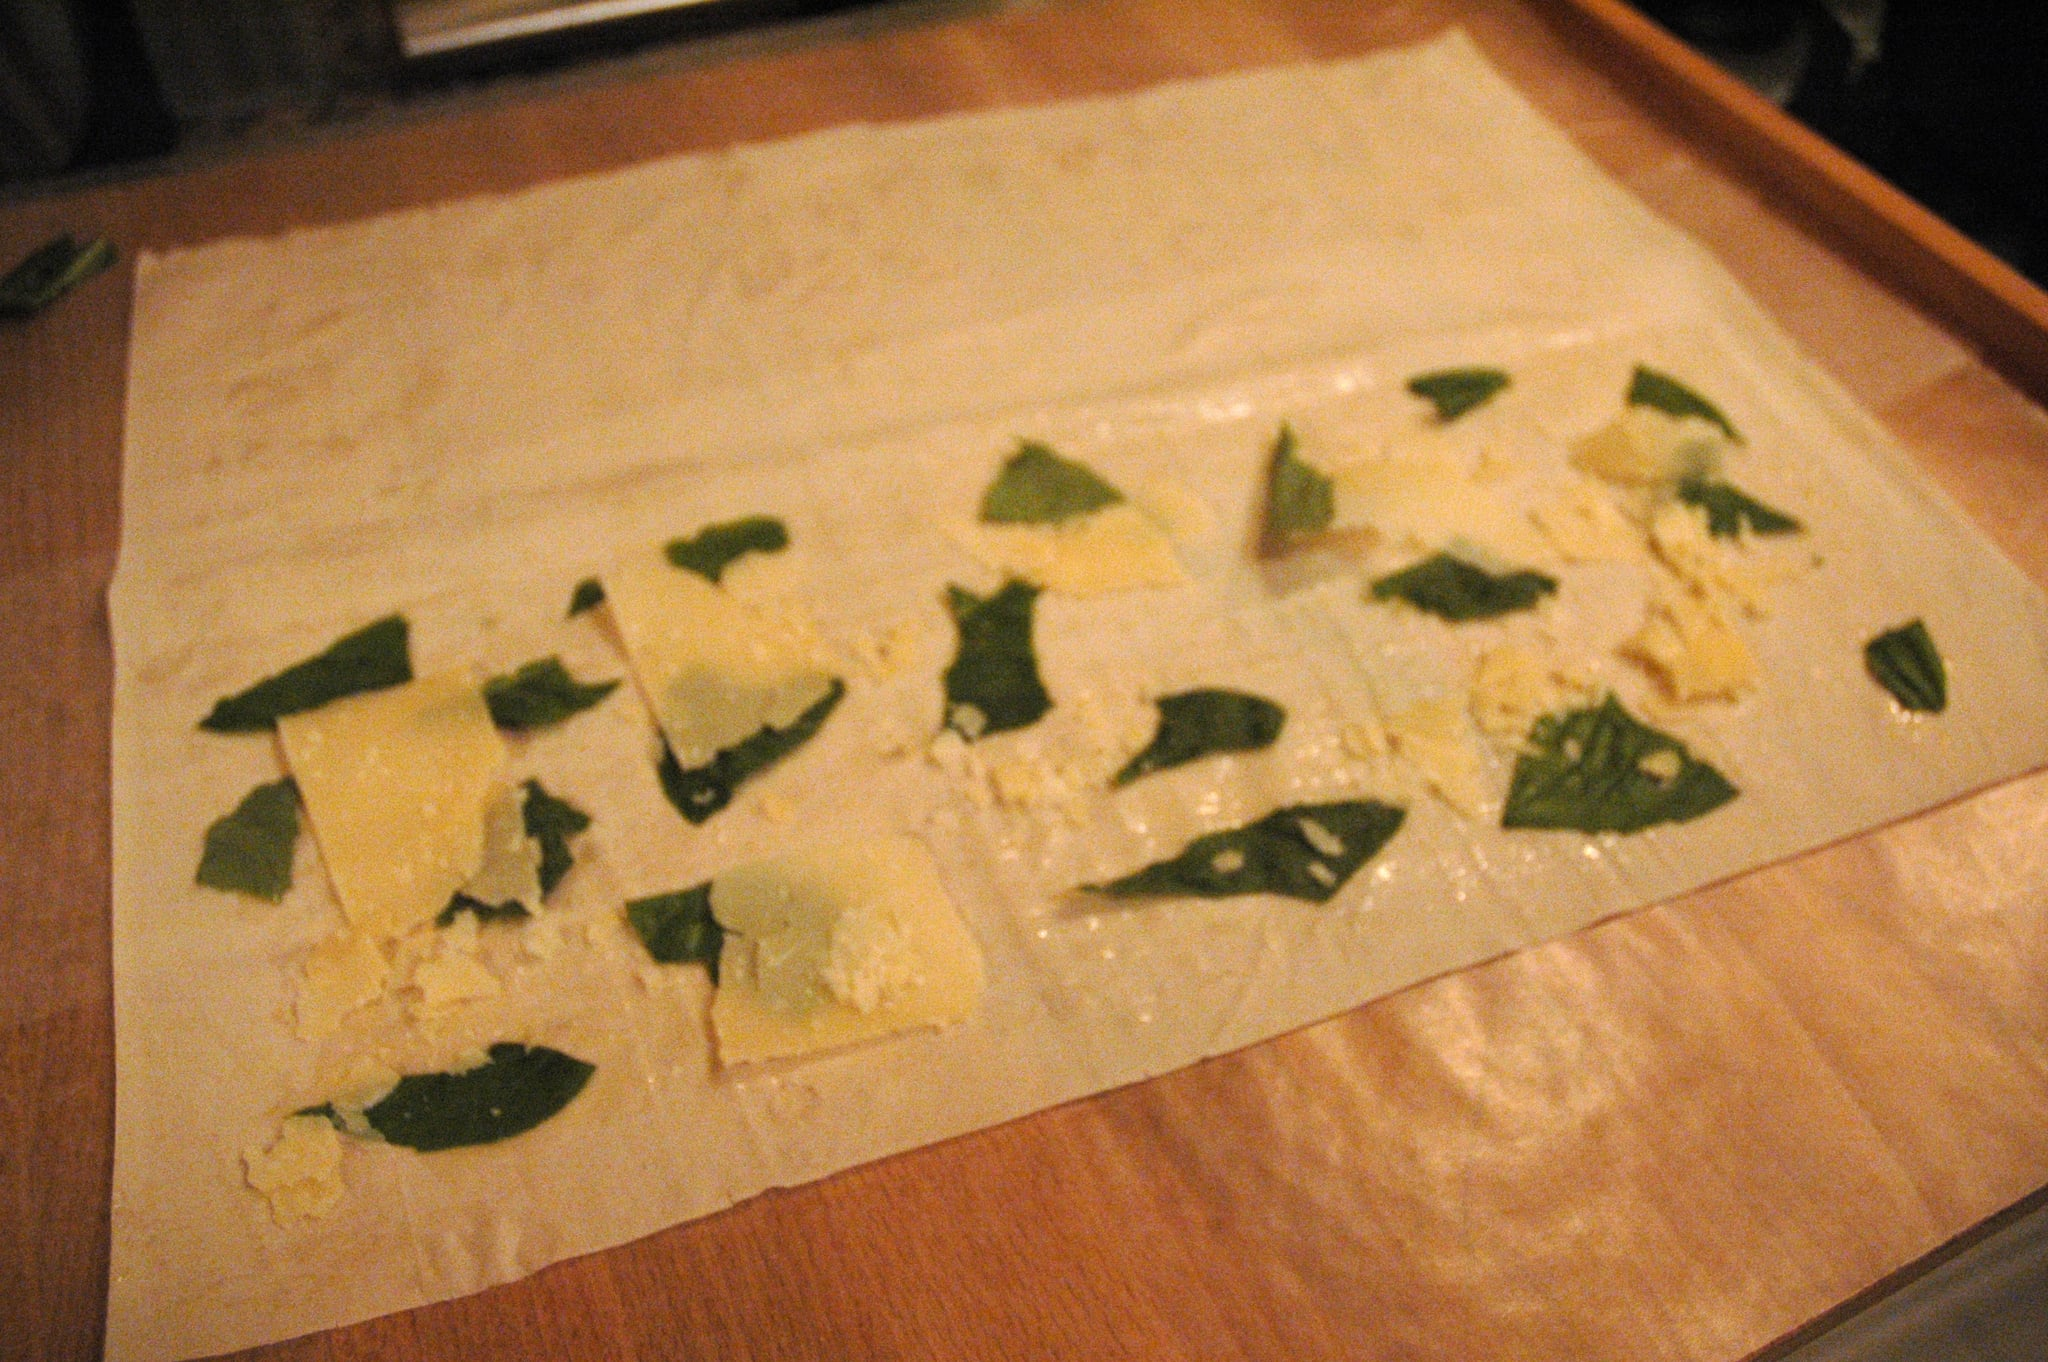 52 Weeks of Baking: Experiments in Phyllo